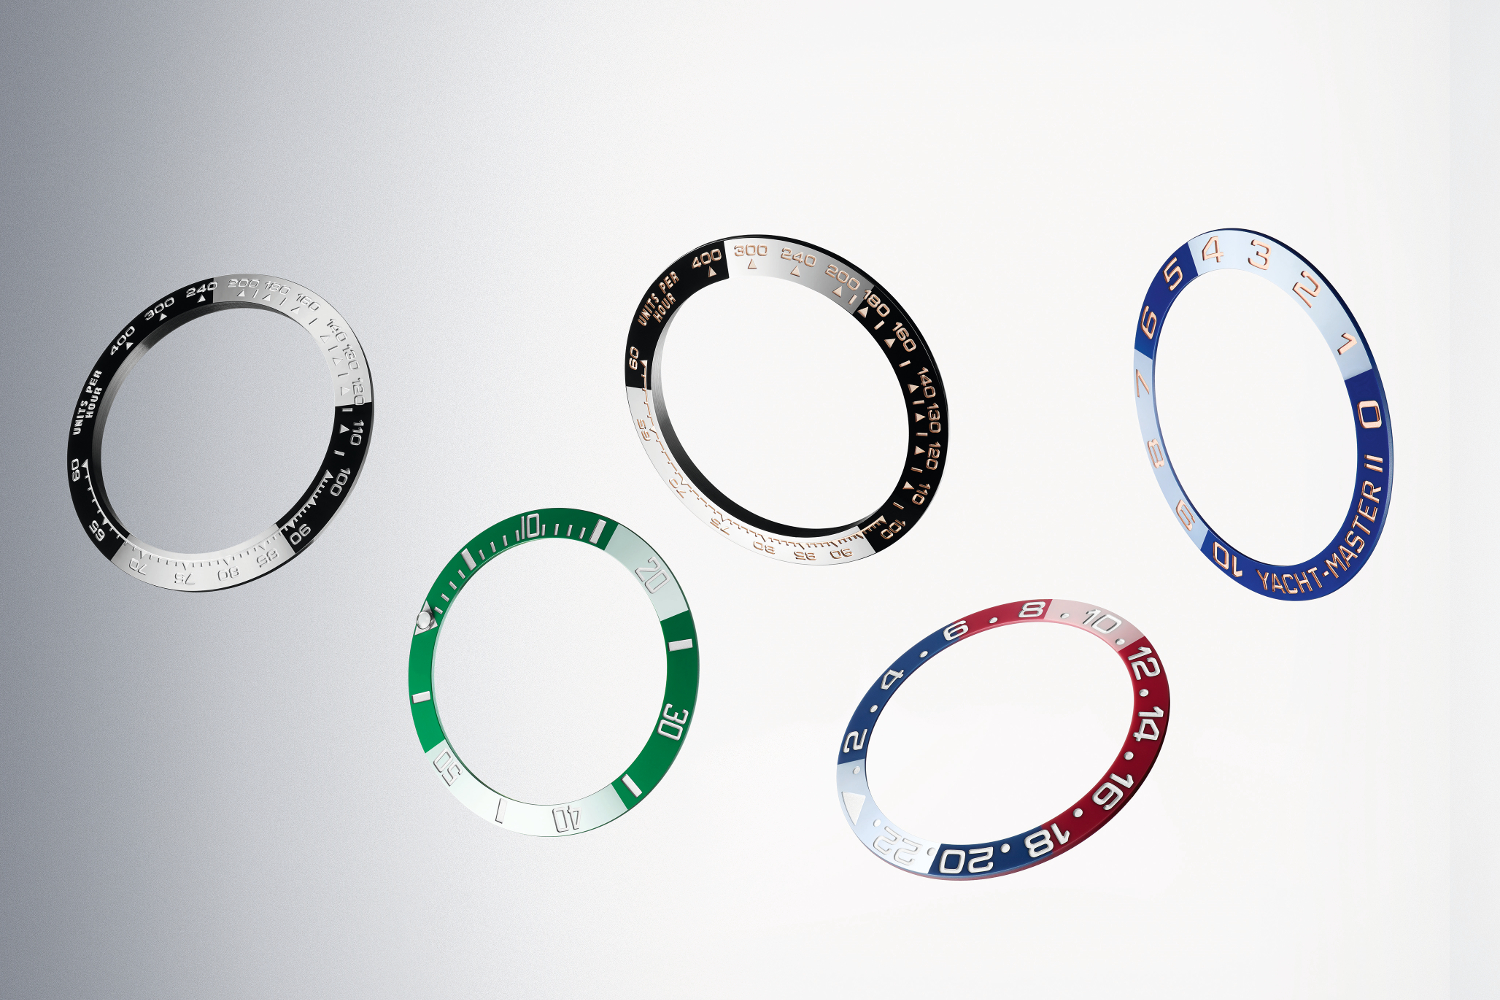 The variety of colored ceramic bezels from Rolex. Photo courtesy of Rolex.